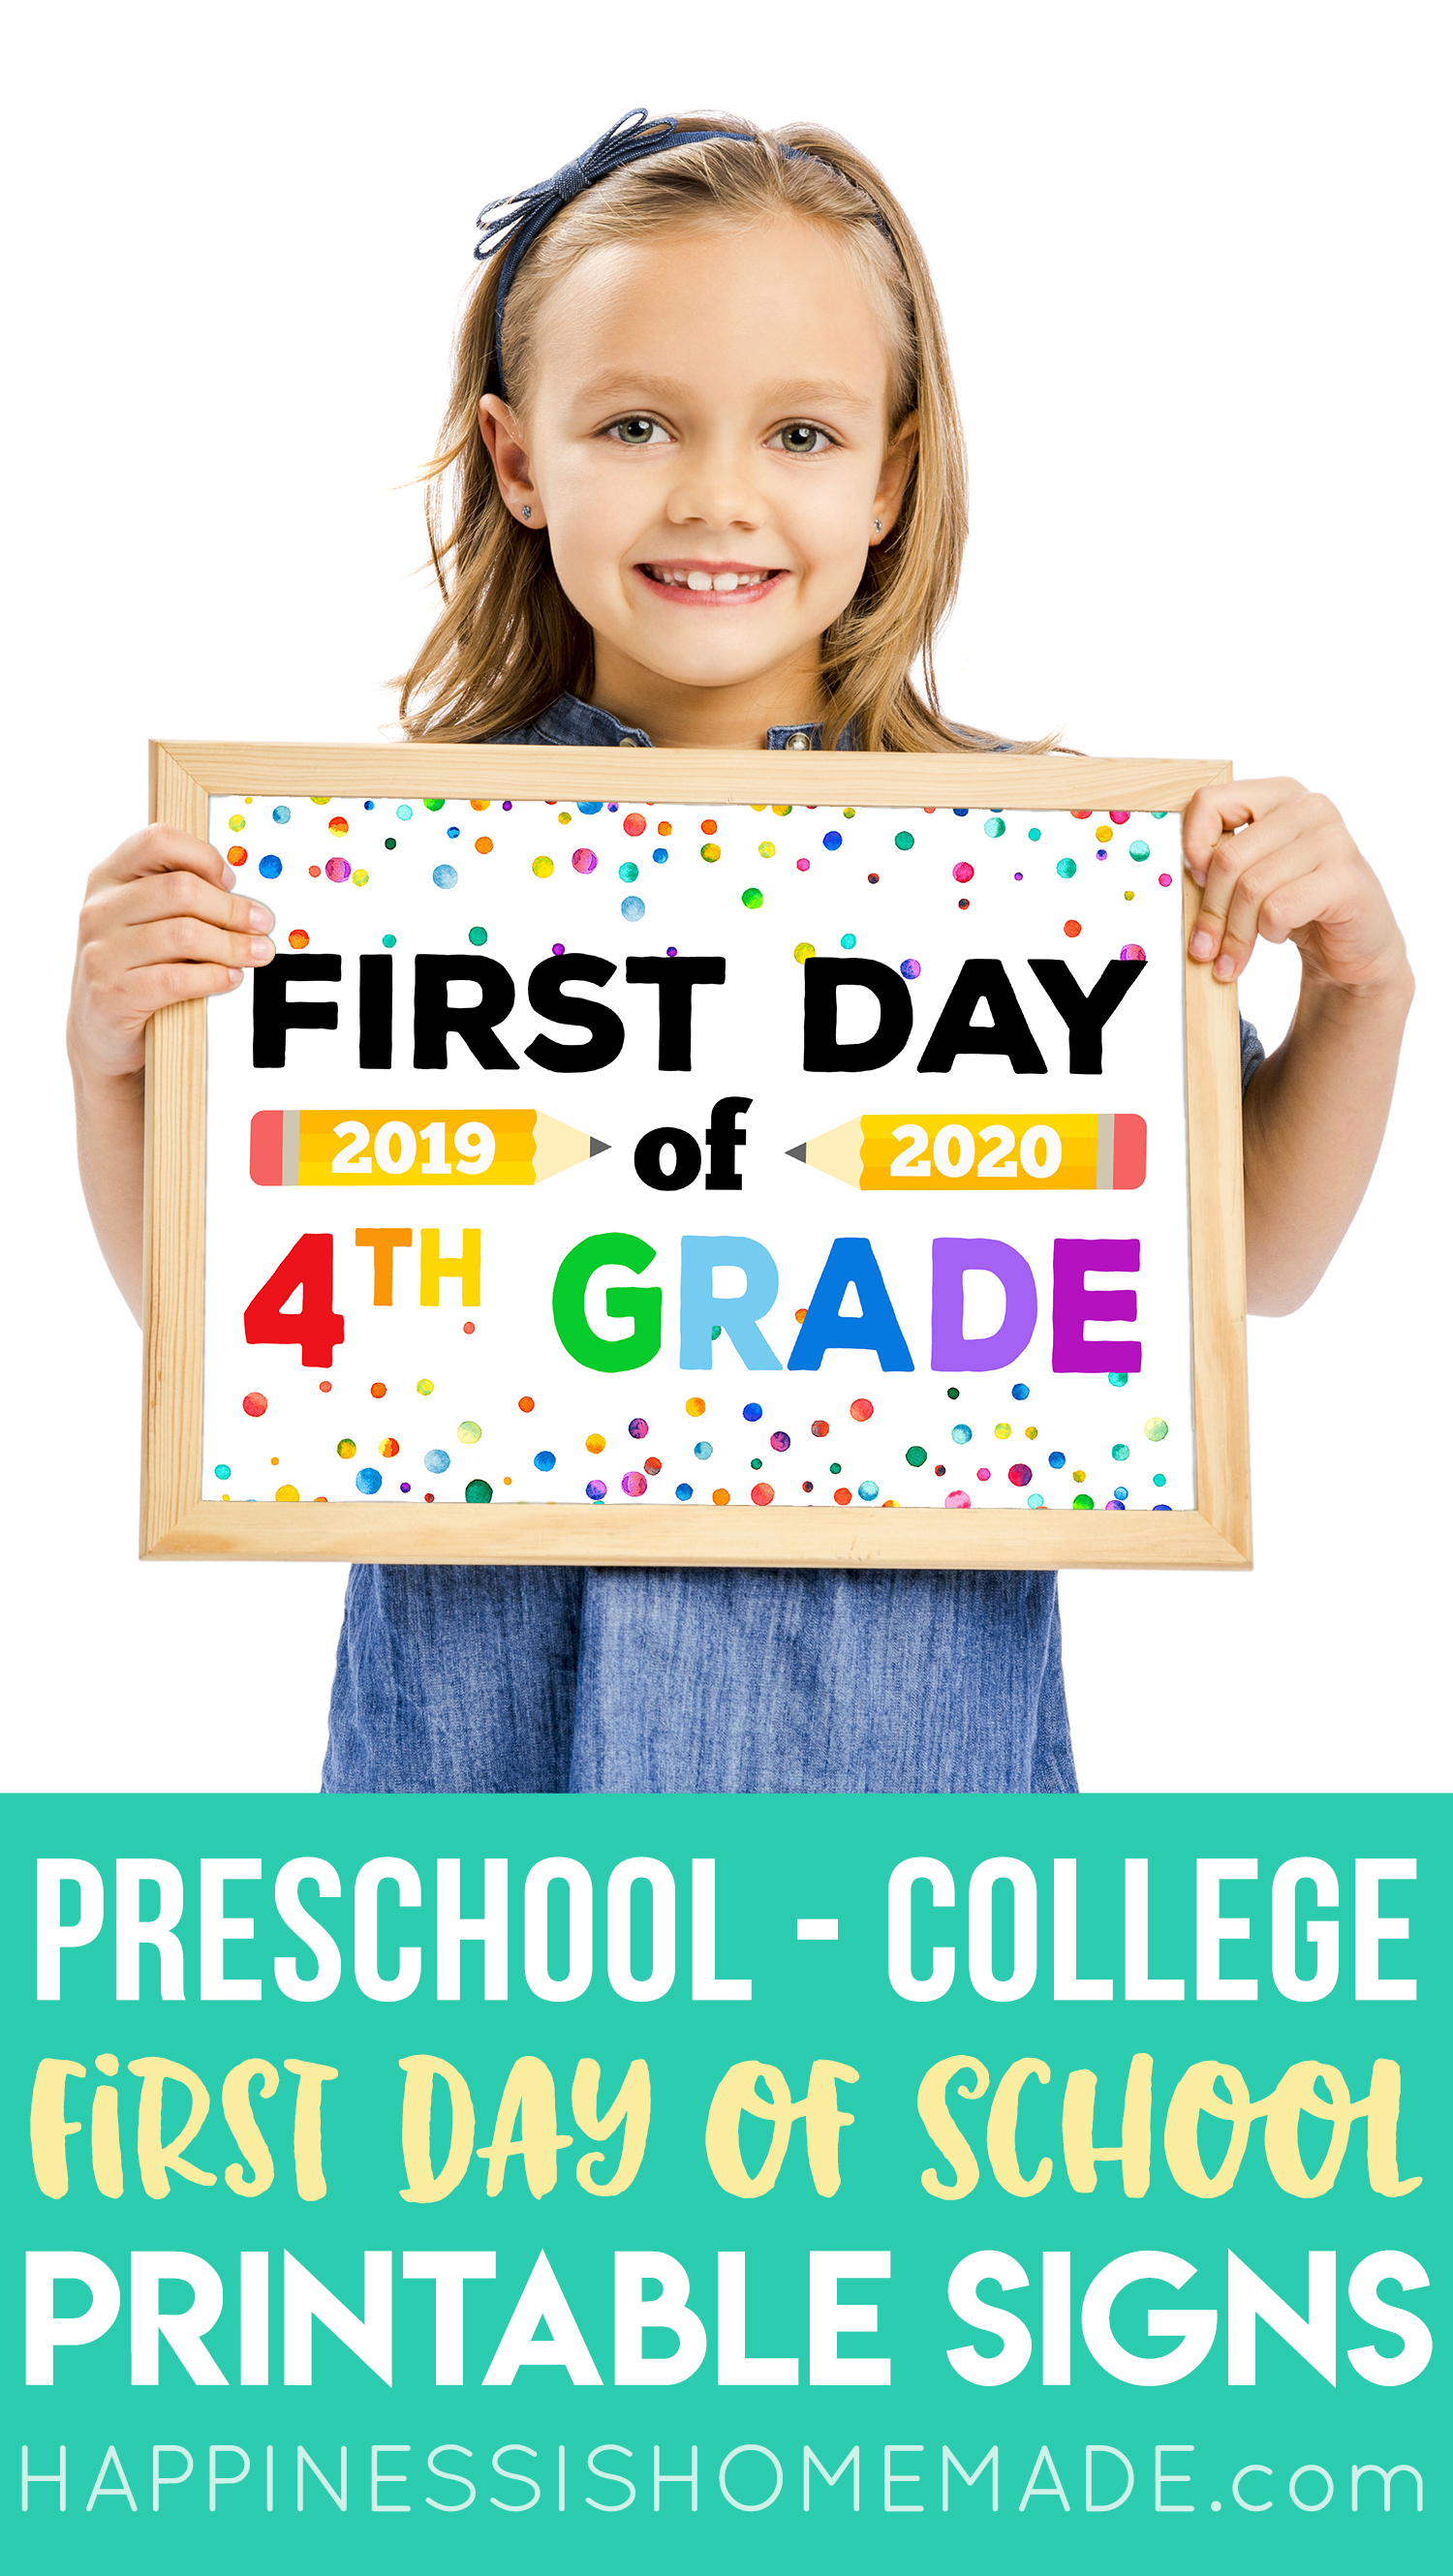 Free Printable First Day Of School Signs Happiness Is Homemade